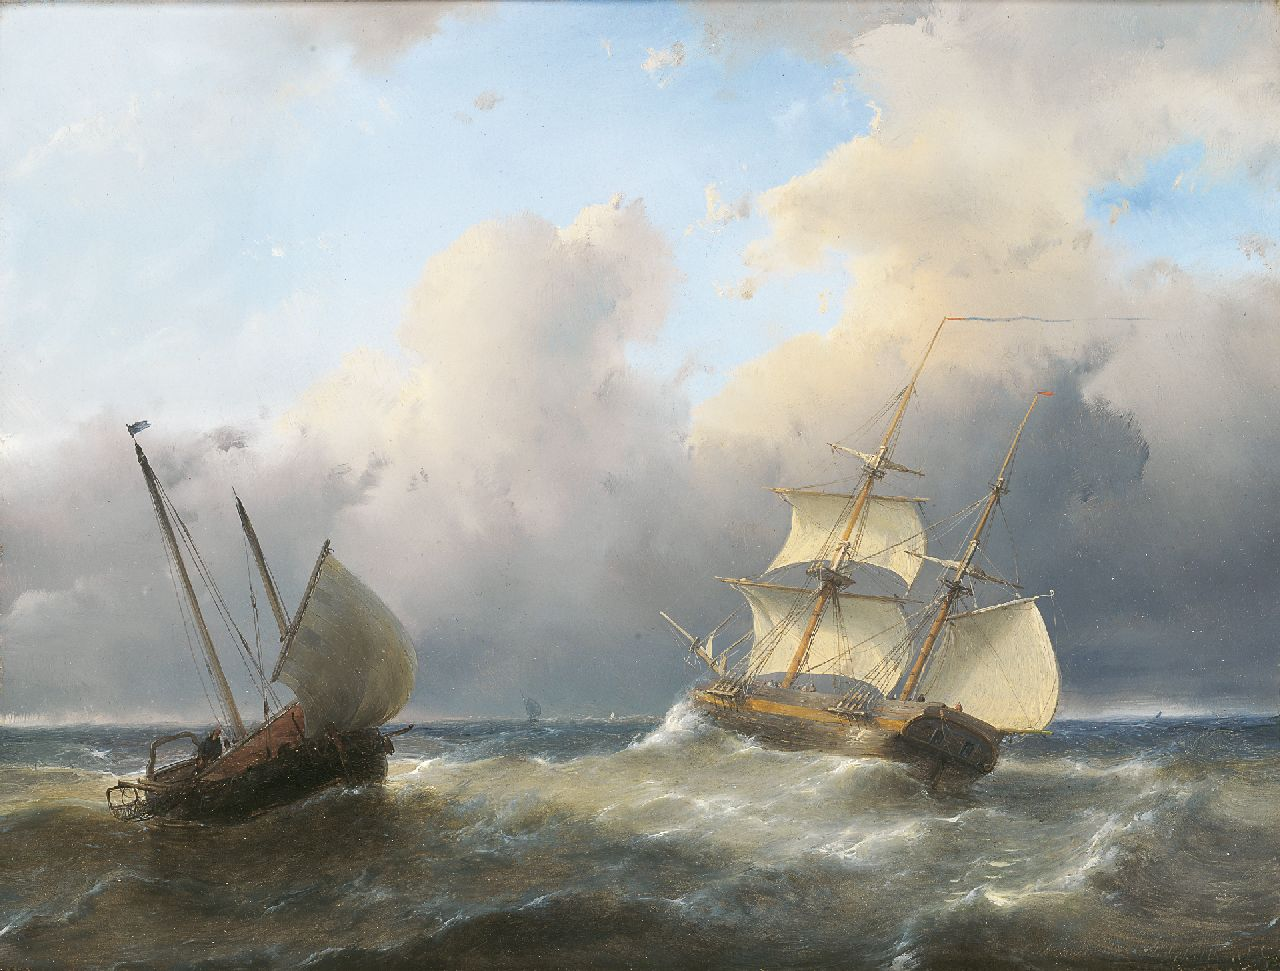 Schelfhout A.  | Andreas Schelfhout, Fishing boats in choppy seas, oil on panel 27.0 x 35.5 cm, signed l.r.